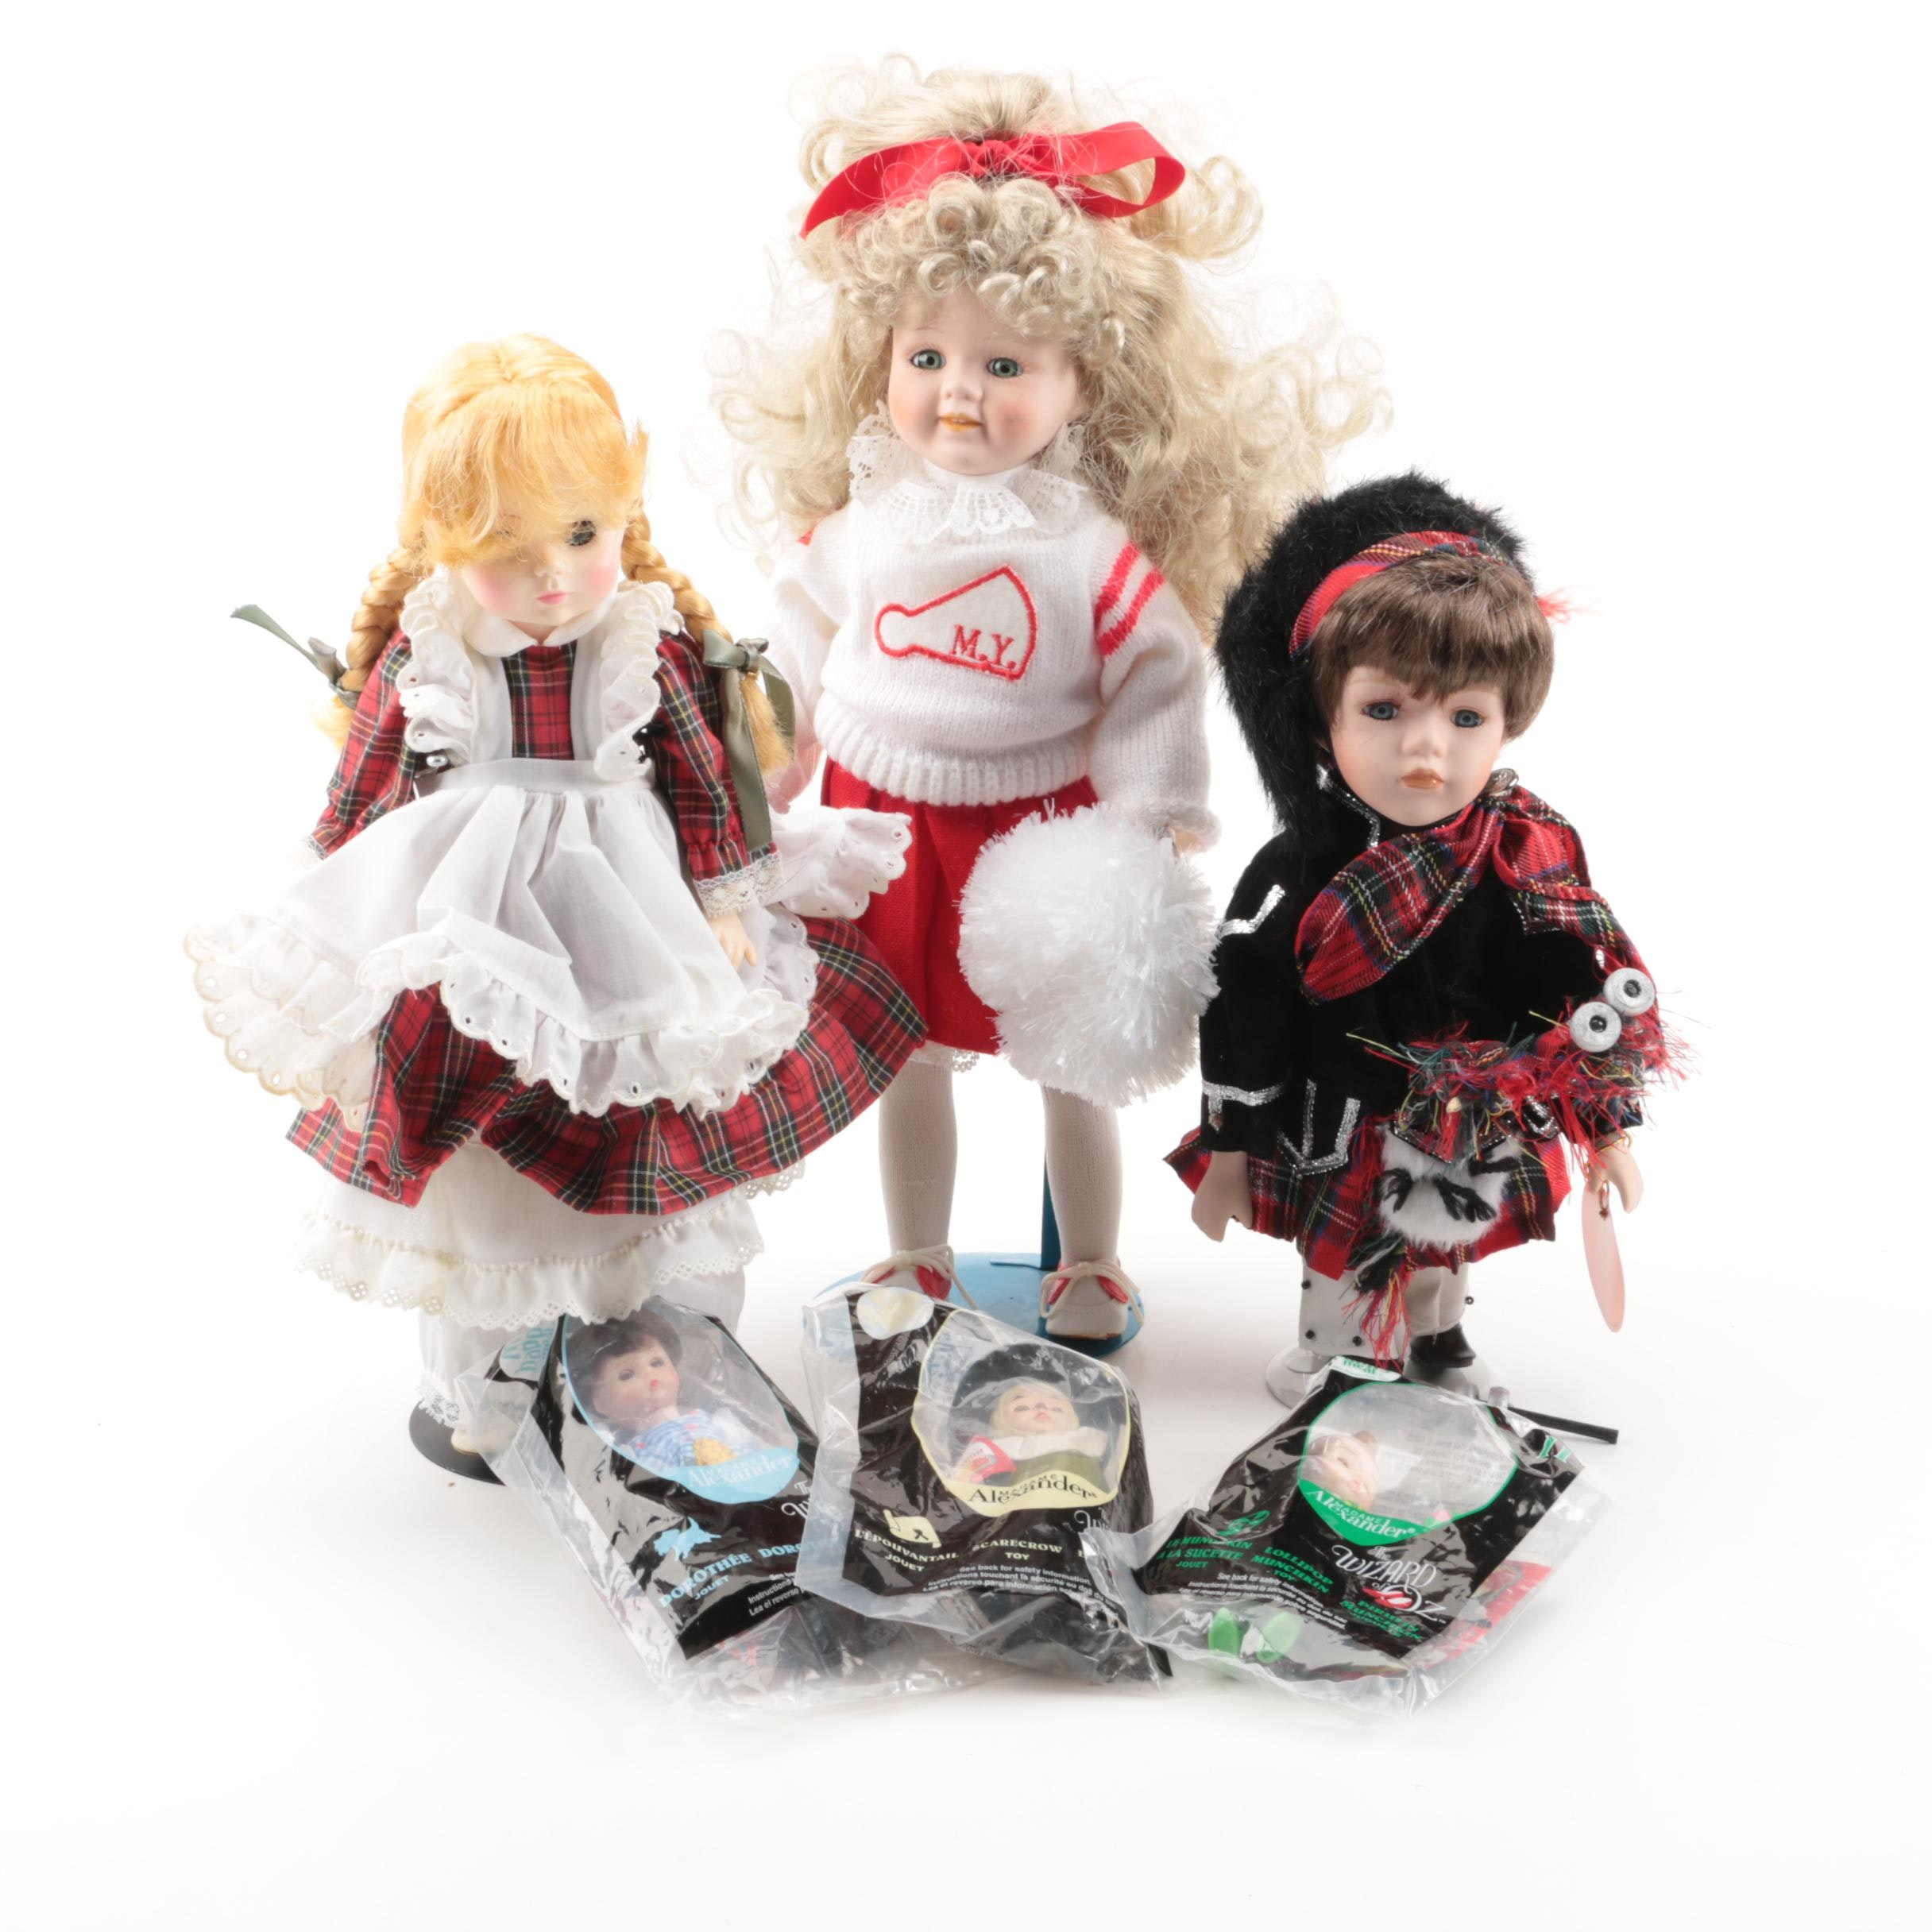 Ceramic and Porcelain Collectable Dolls Including Madame Alexander